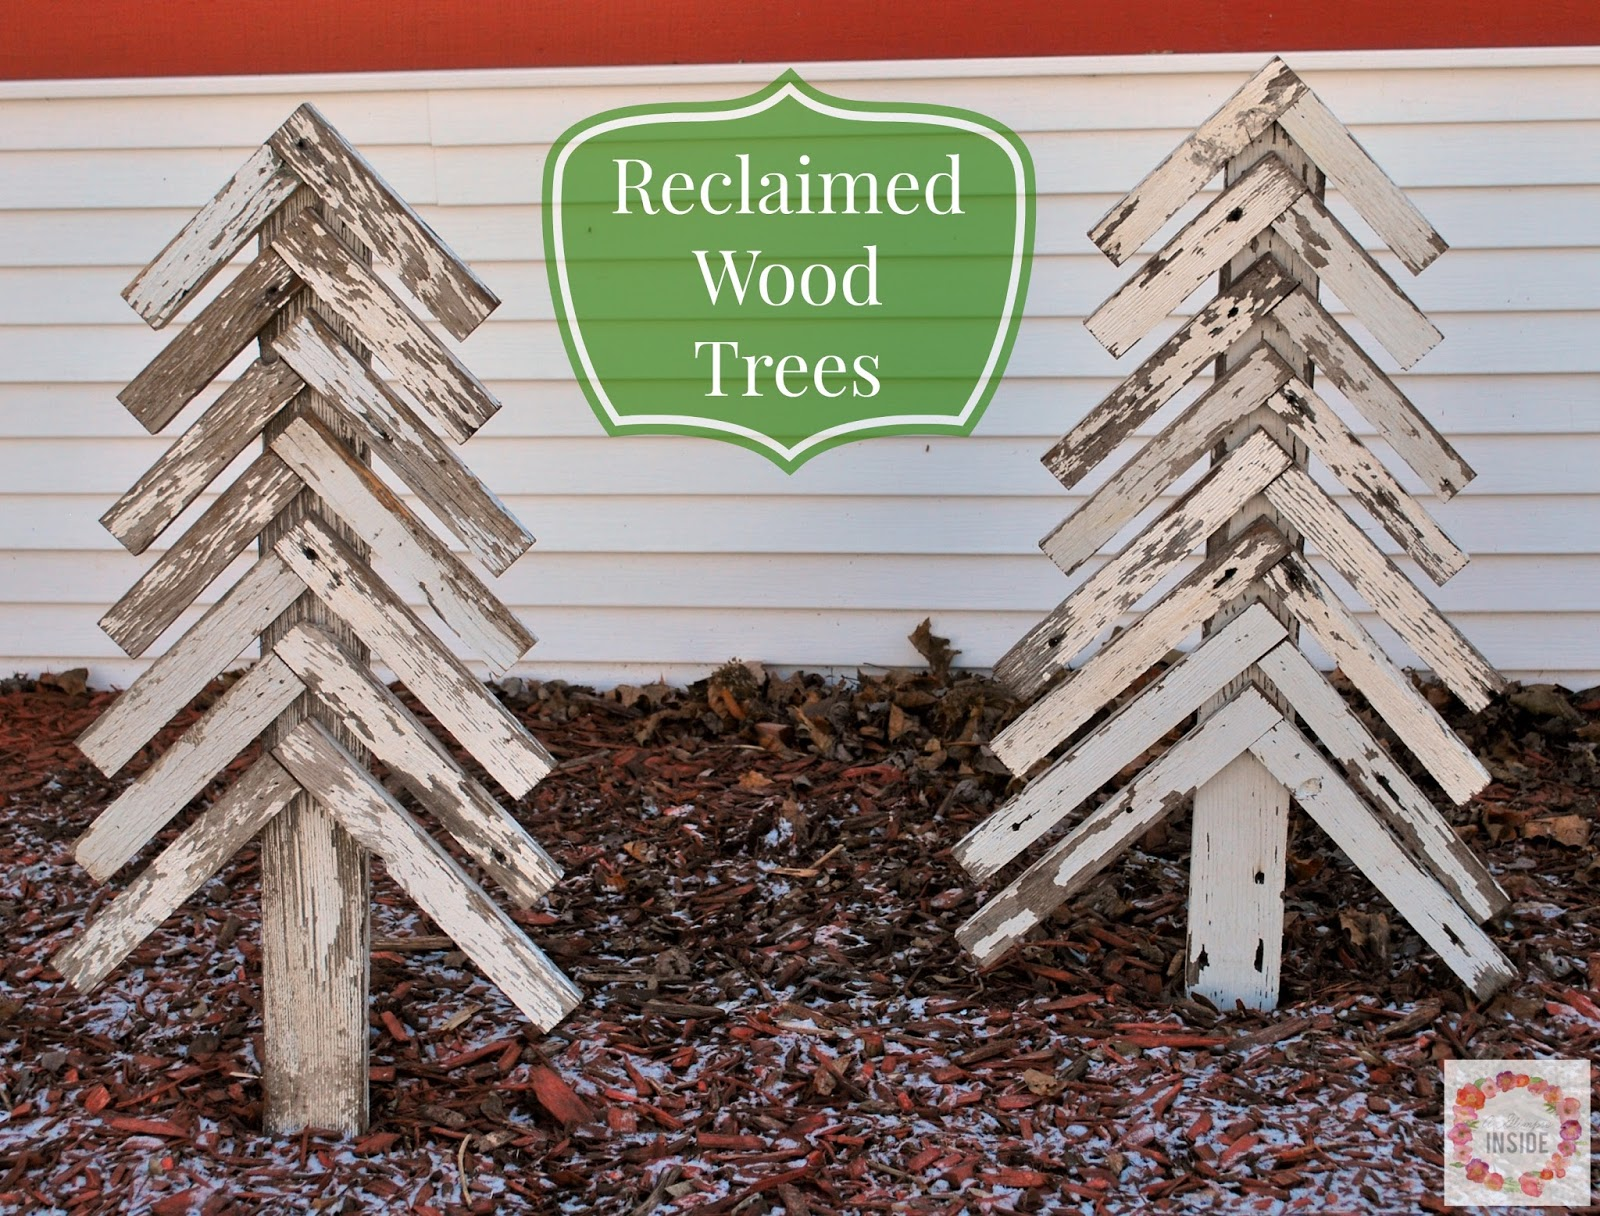 http://www.aglimpseinsideblog.com/2015/11/reclaimed-wood-trees.html